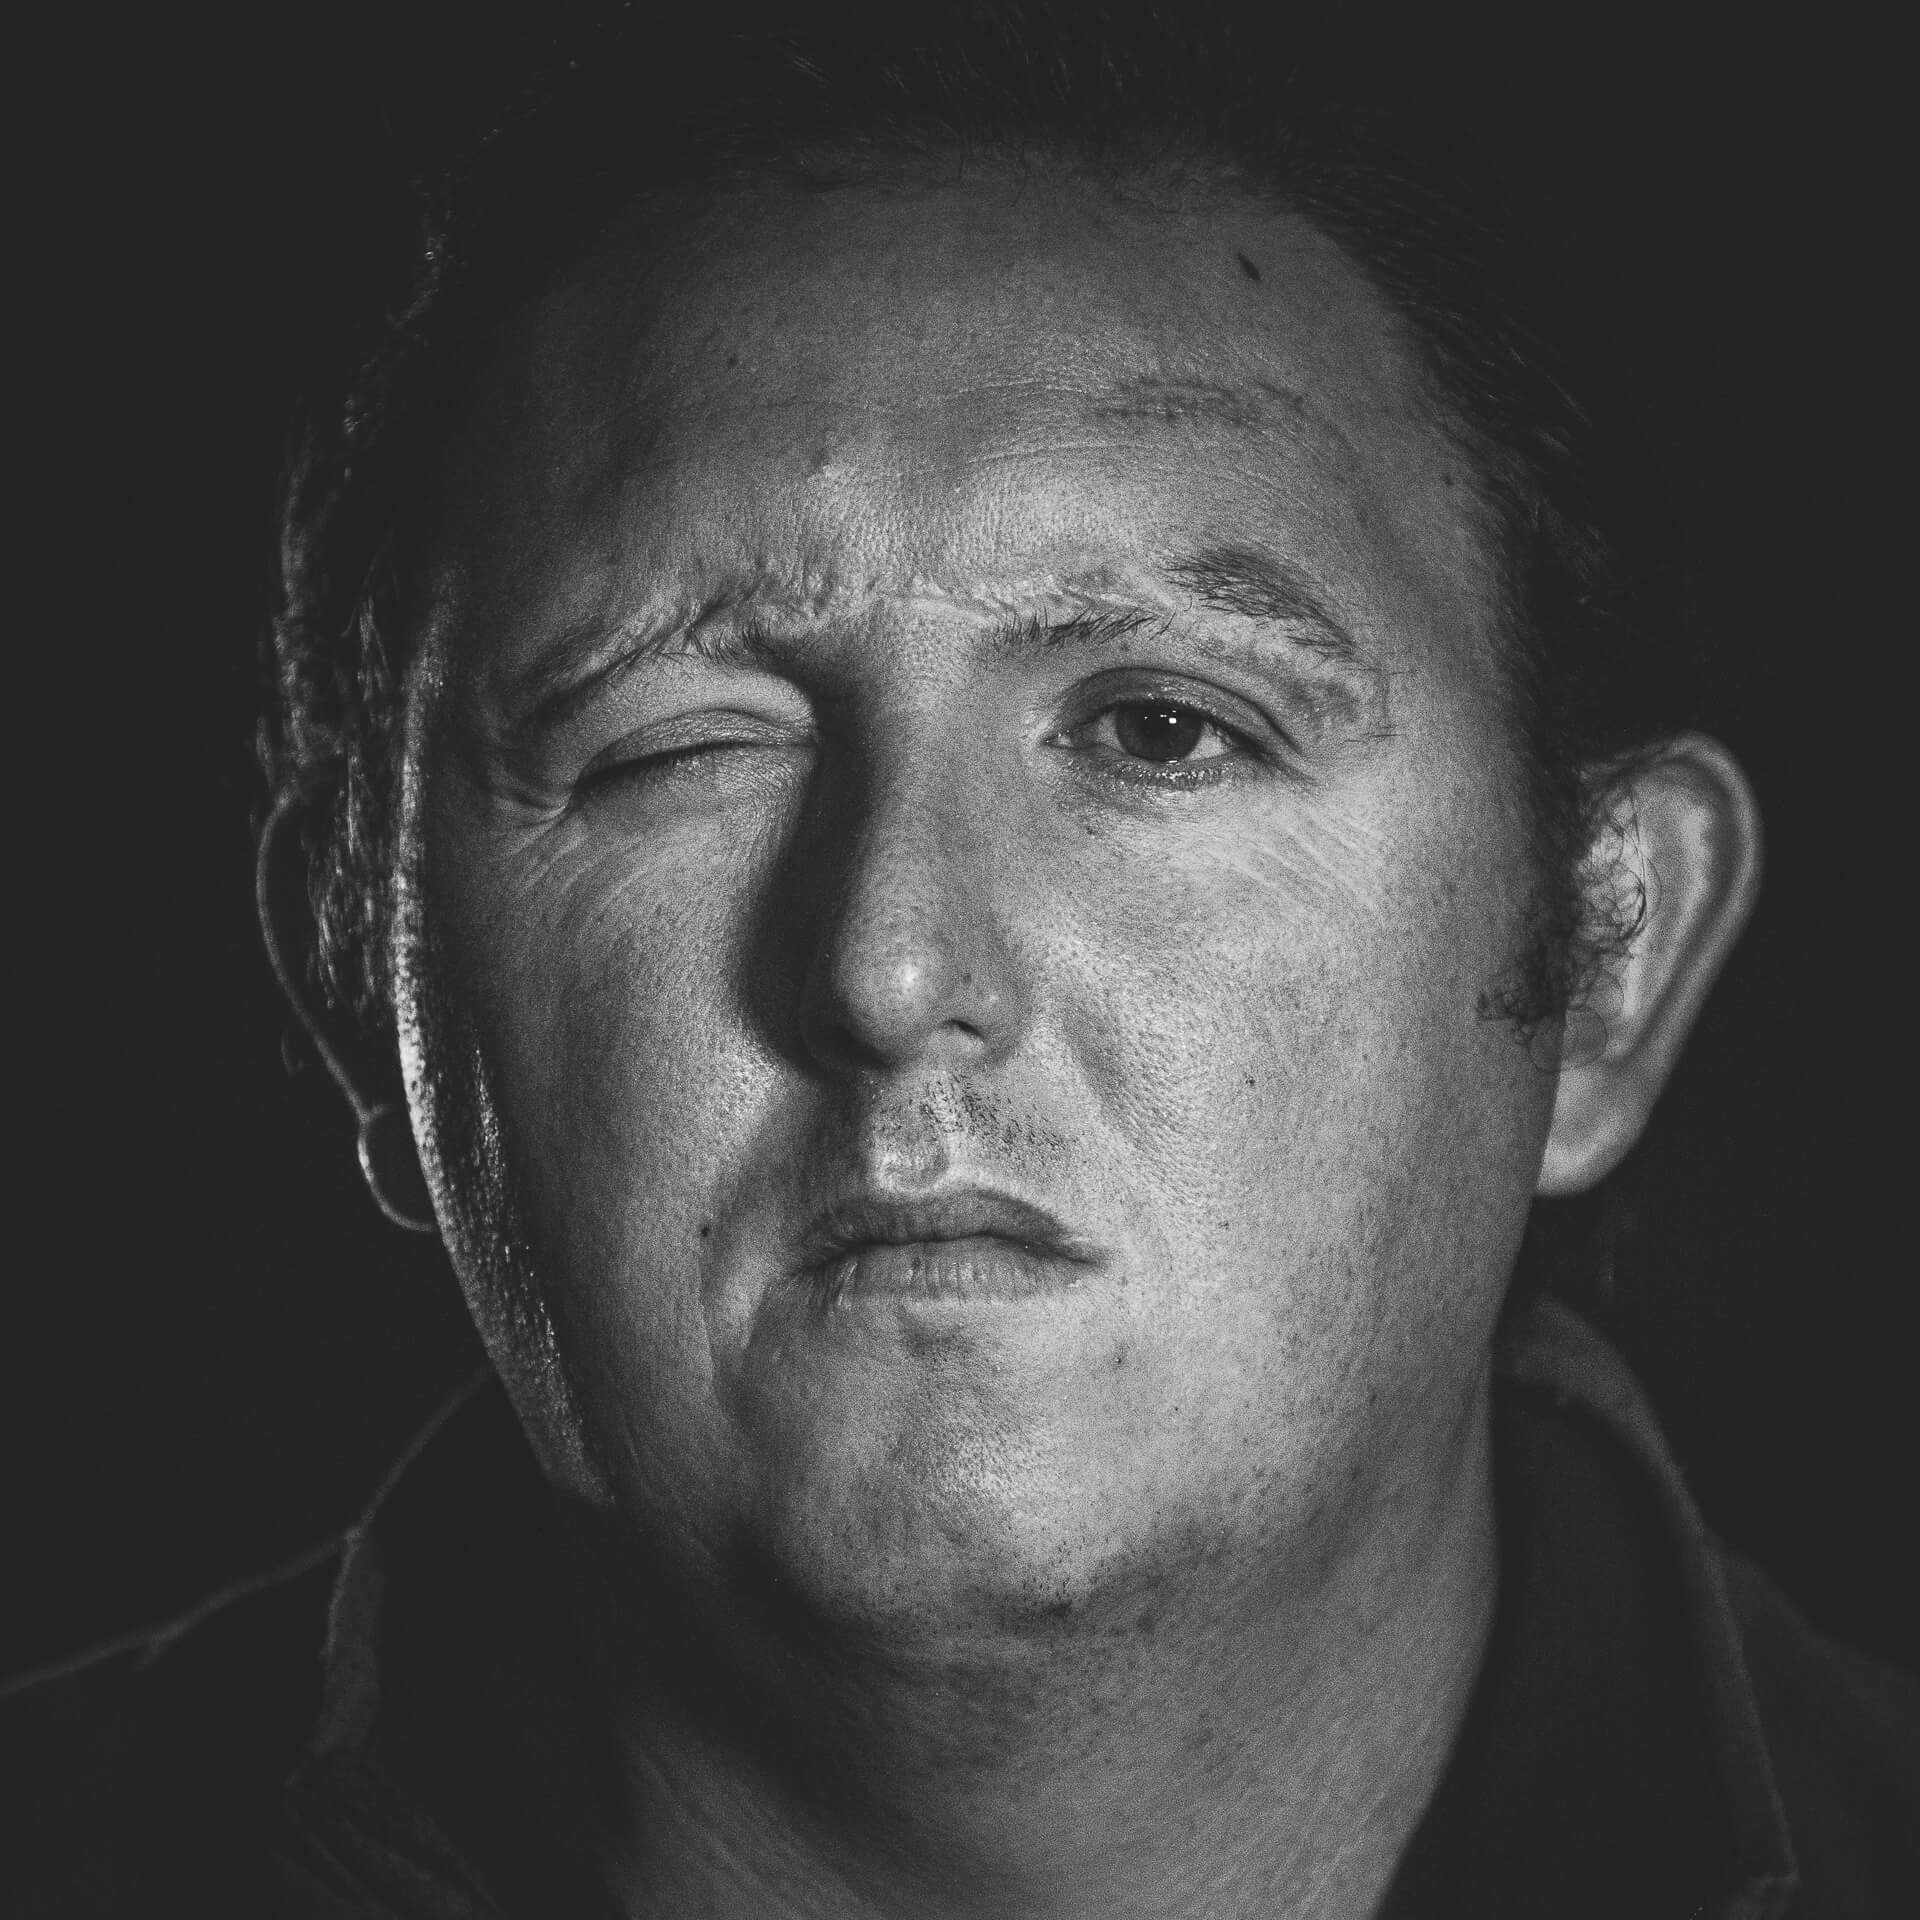 This image shows the scarred face of a Army Veteran. He was injured in a rocket attack whilst deployed in Afghanistan. The attack left him blind in his right eye, and with very limited sight in his left. It is a Black & White image.